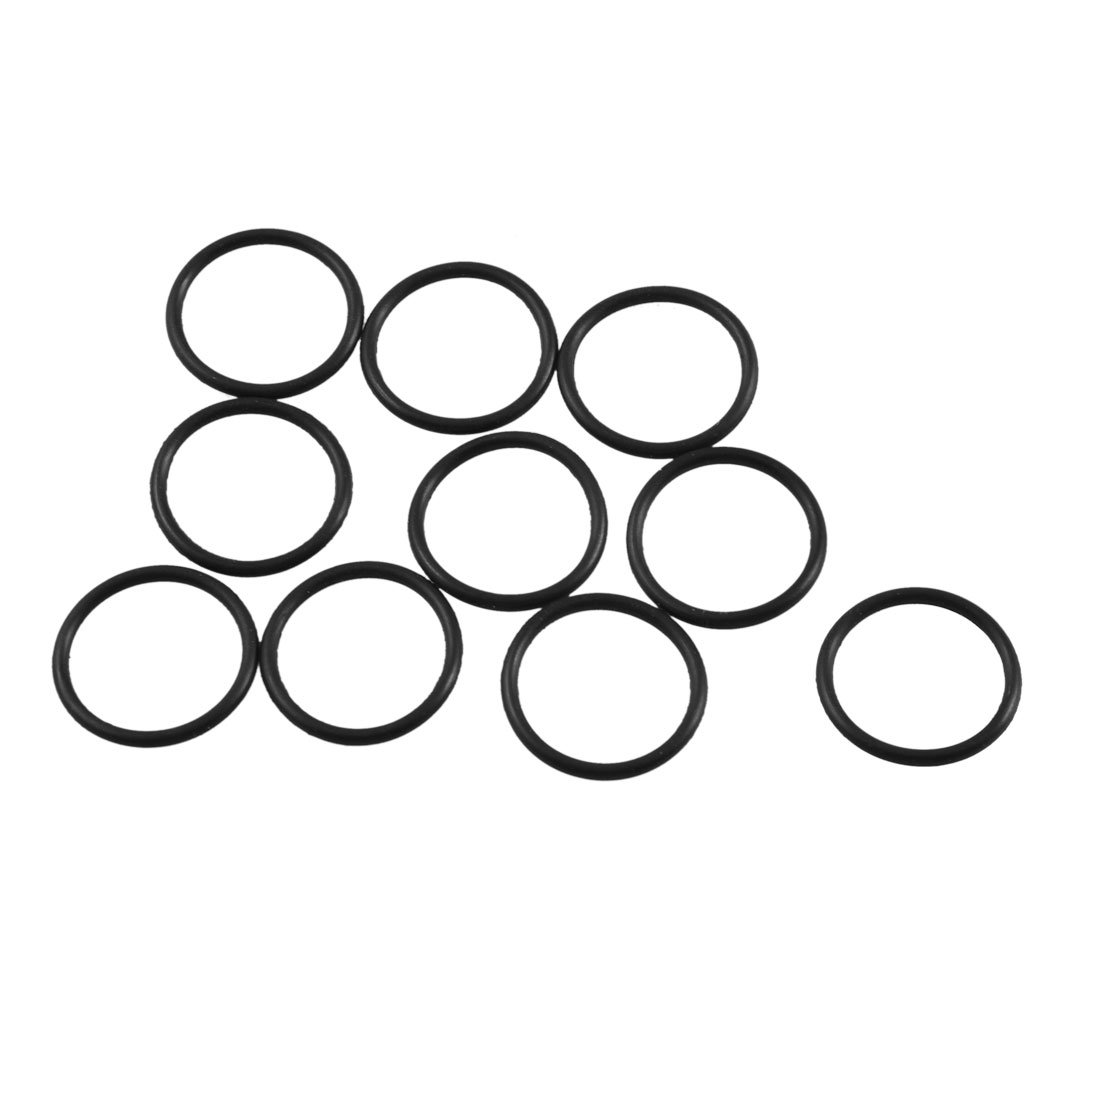 10 Pcs Black Rubber Oil Filter Seal O Ring Gaskets 17mm x 14mm x 1.5mm sourcingmap a12100800ux1030